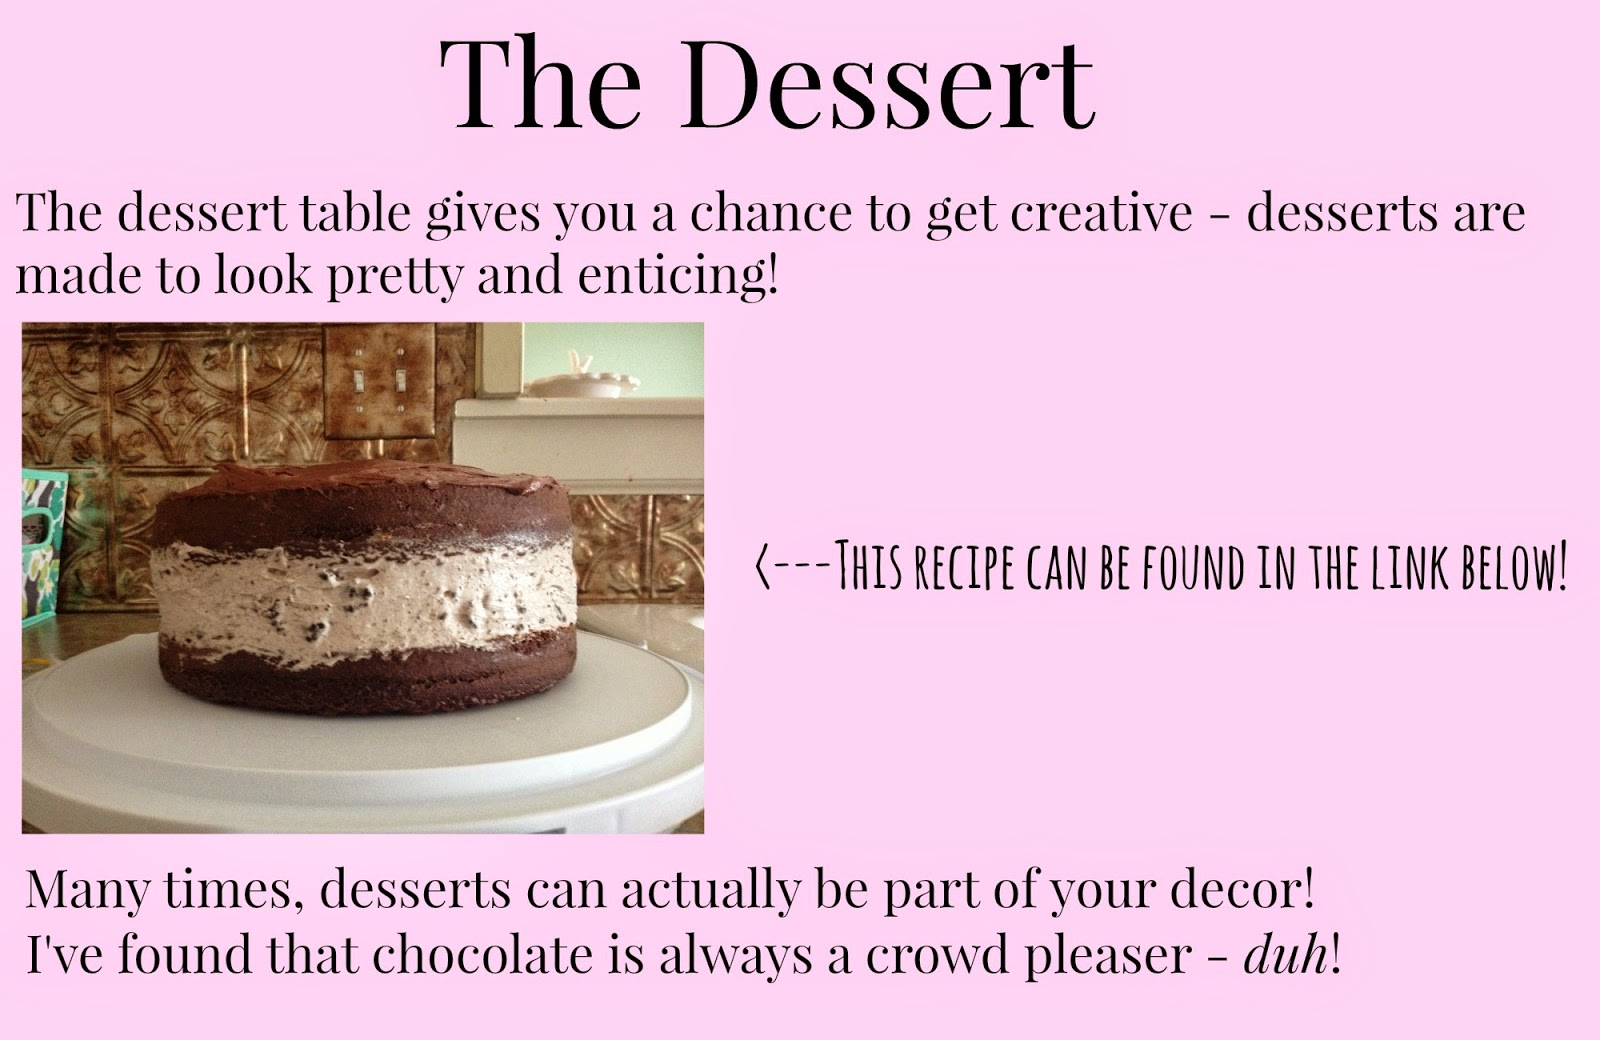 6 Tips to Throwing a Successful Party - Dessert